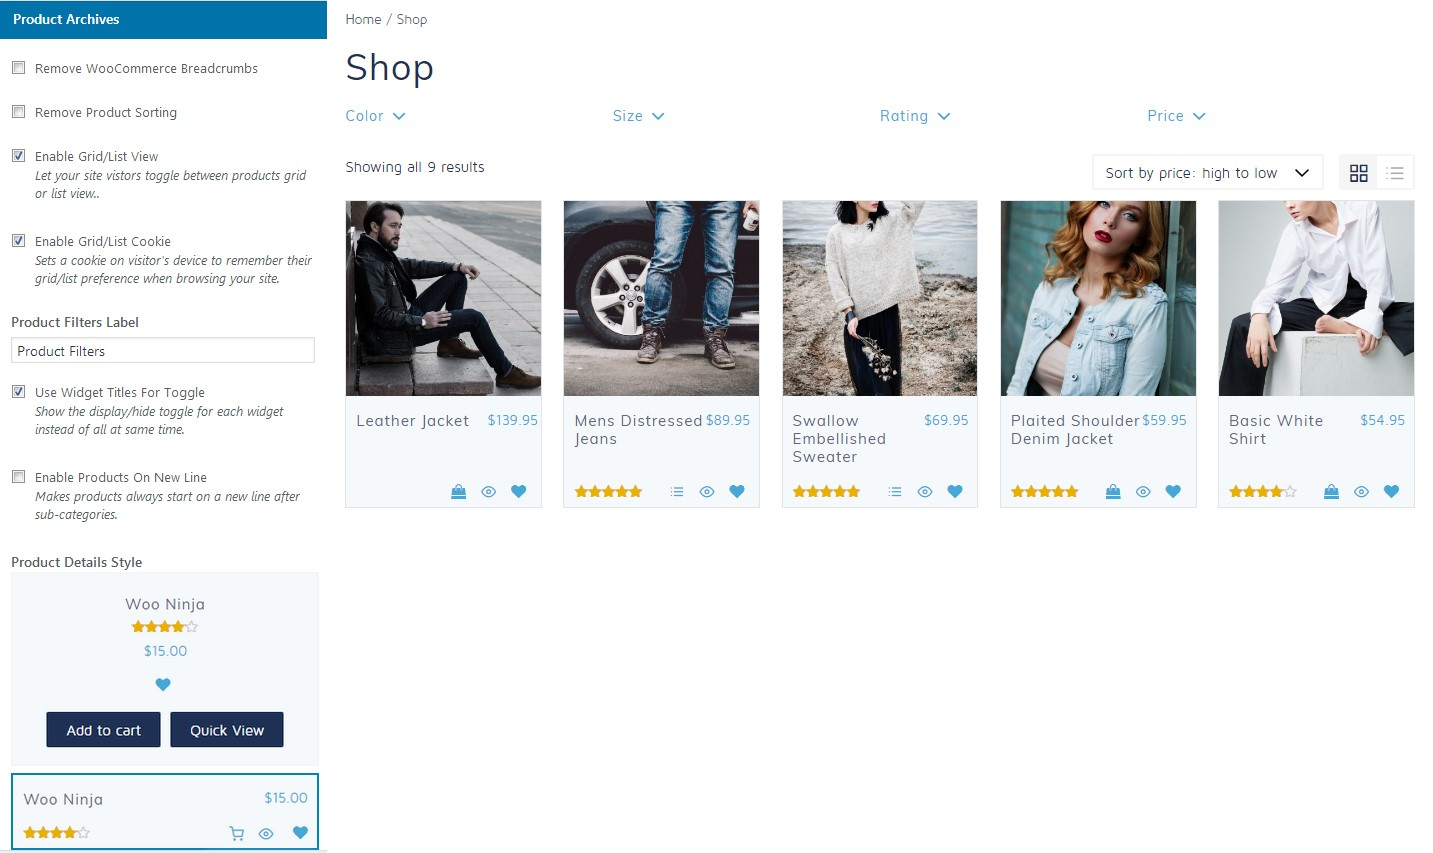 The product archive options of the Retail Pro theme